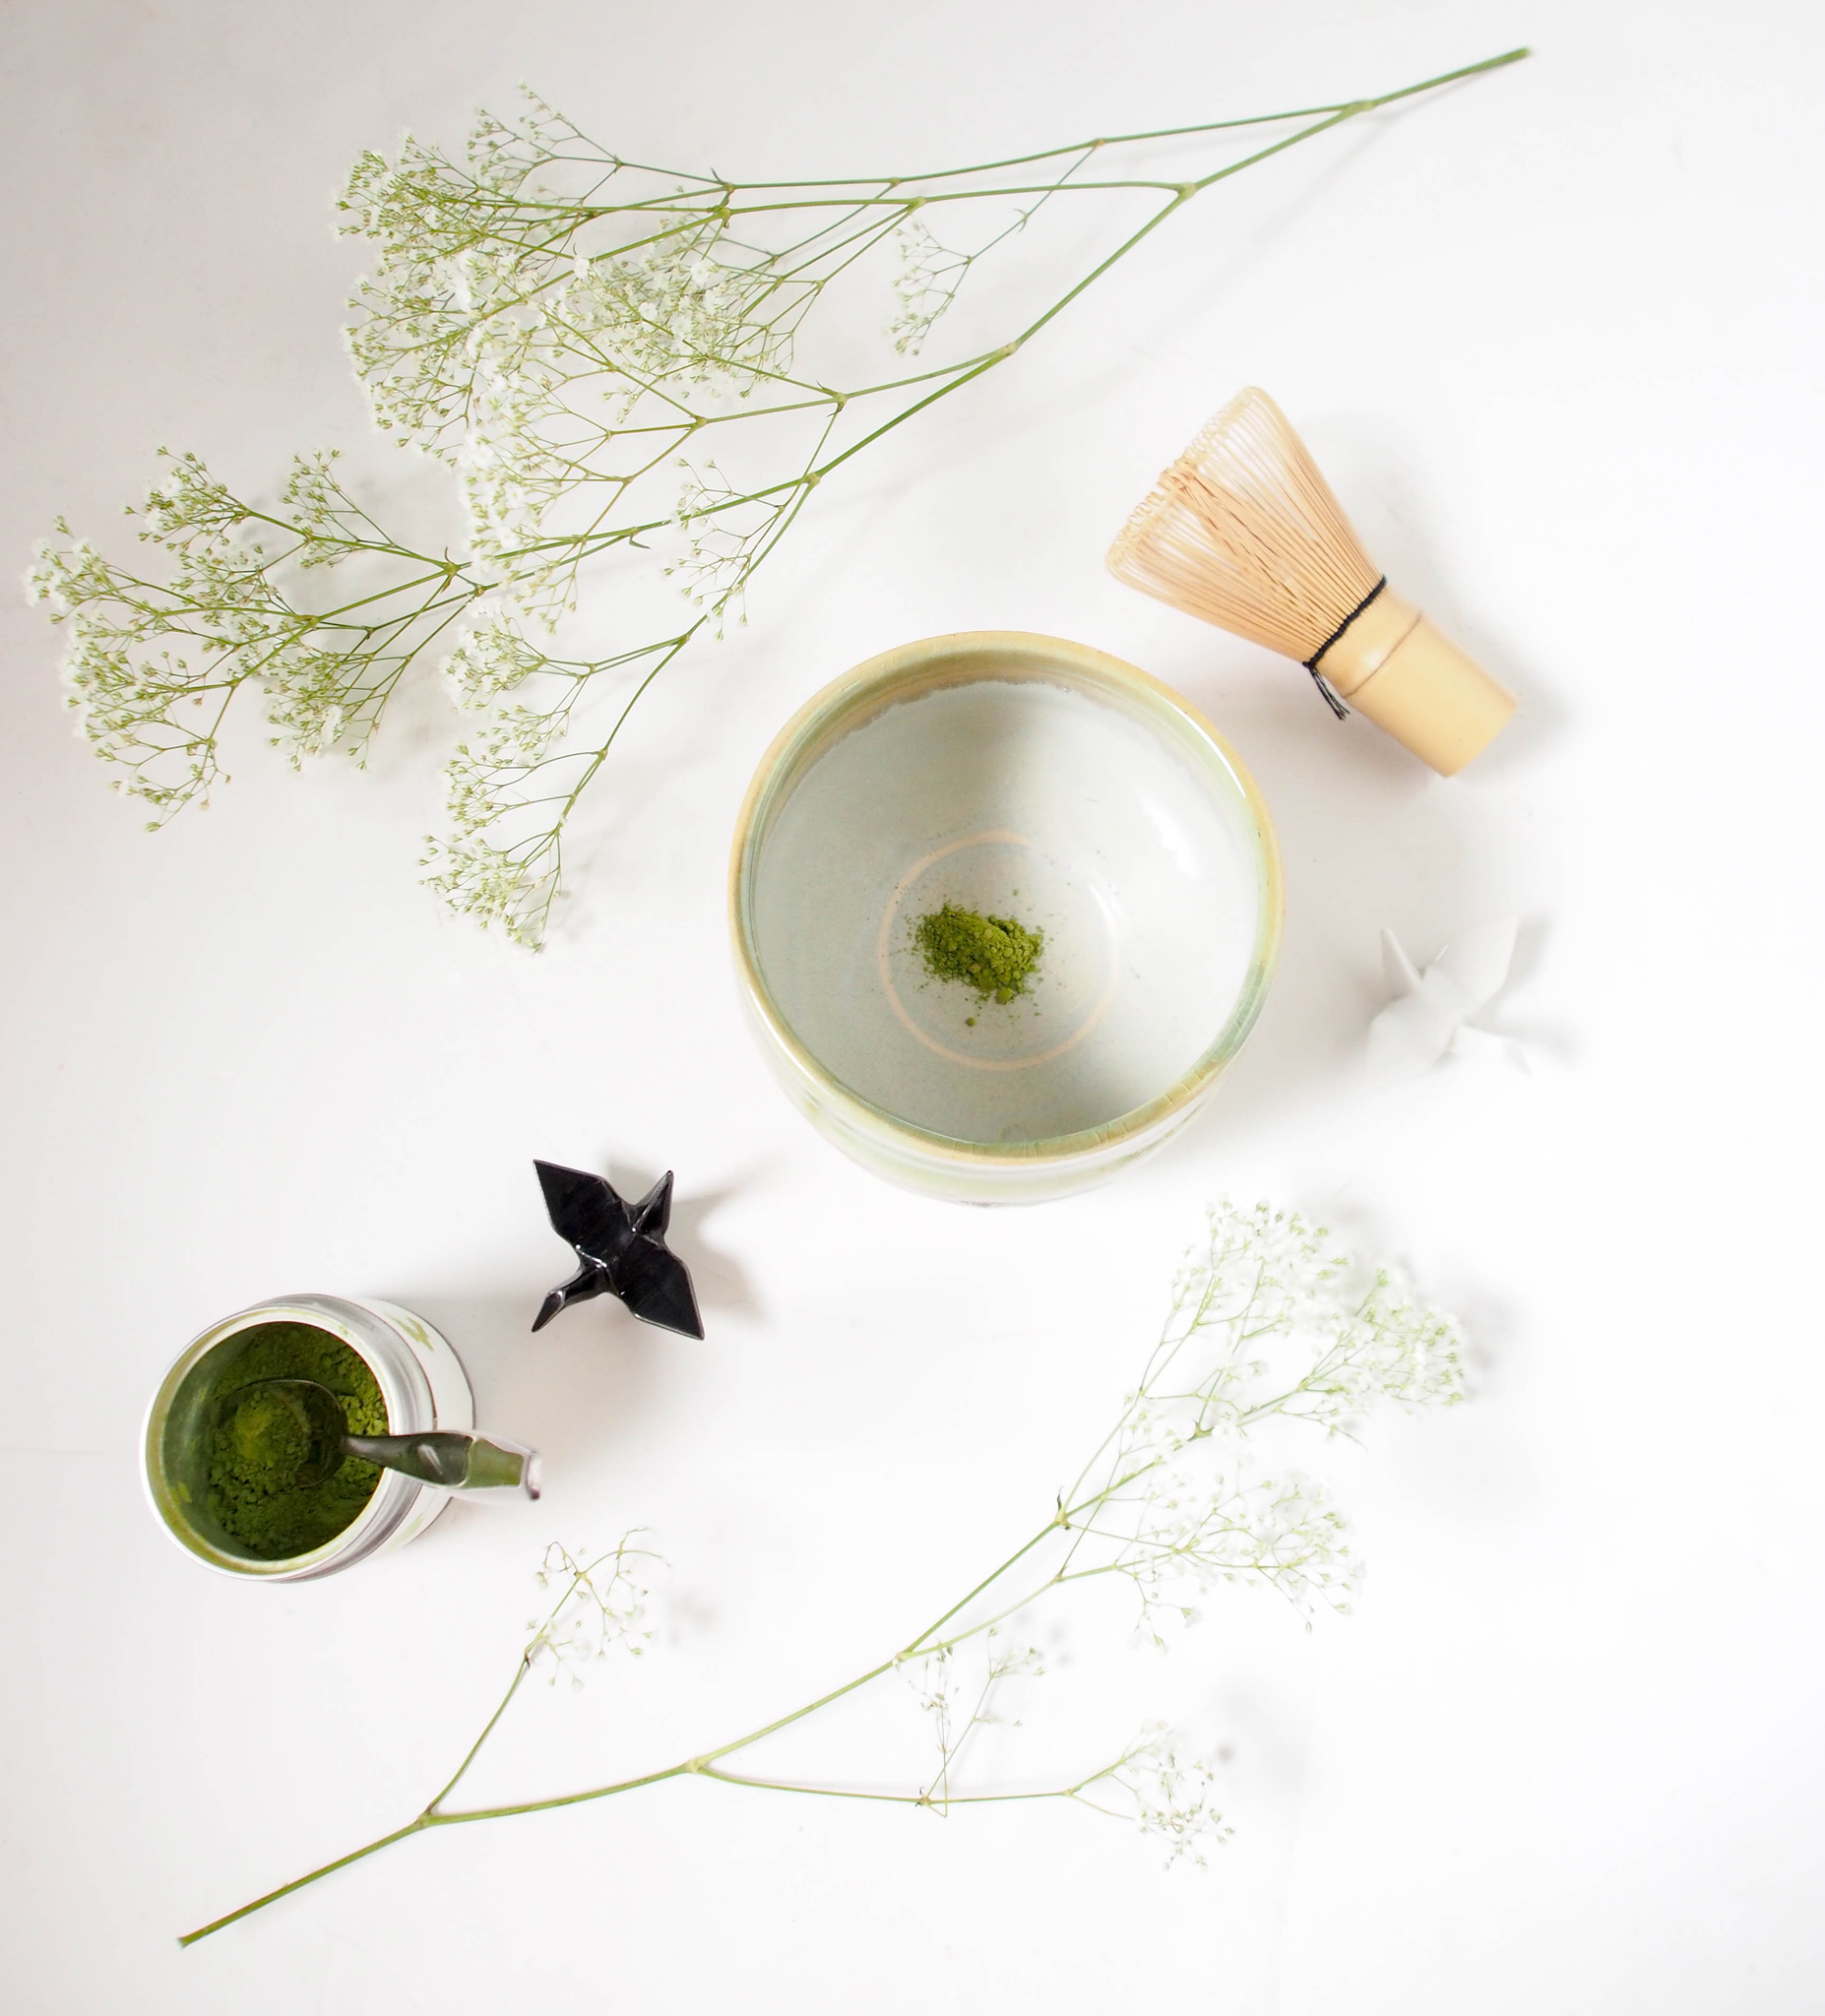 Matcha Tea from  Matchanna , ceremonial tea bowl and whisk from  Teavana . All photos © Suzanne Spiegoski